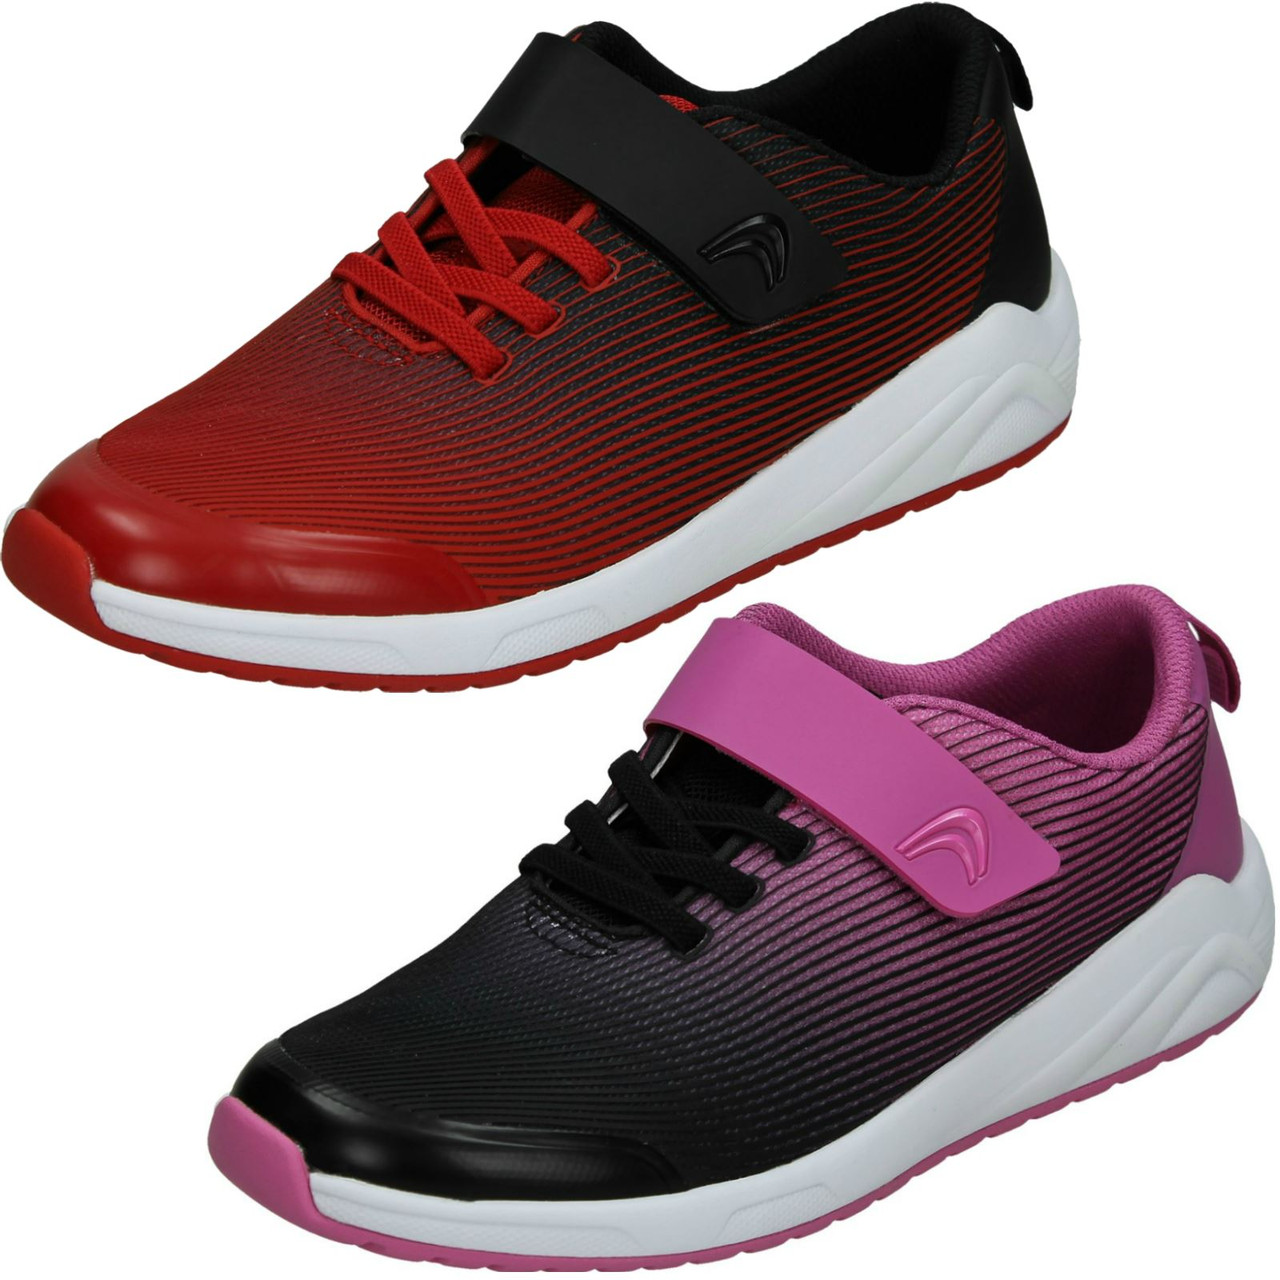 Childrens Clarks Unisex Casual Trainers